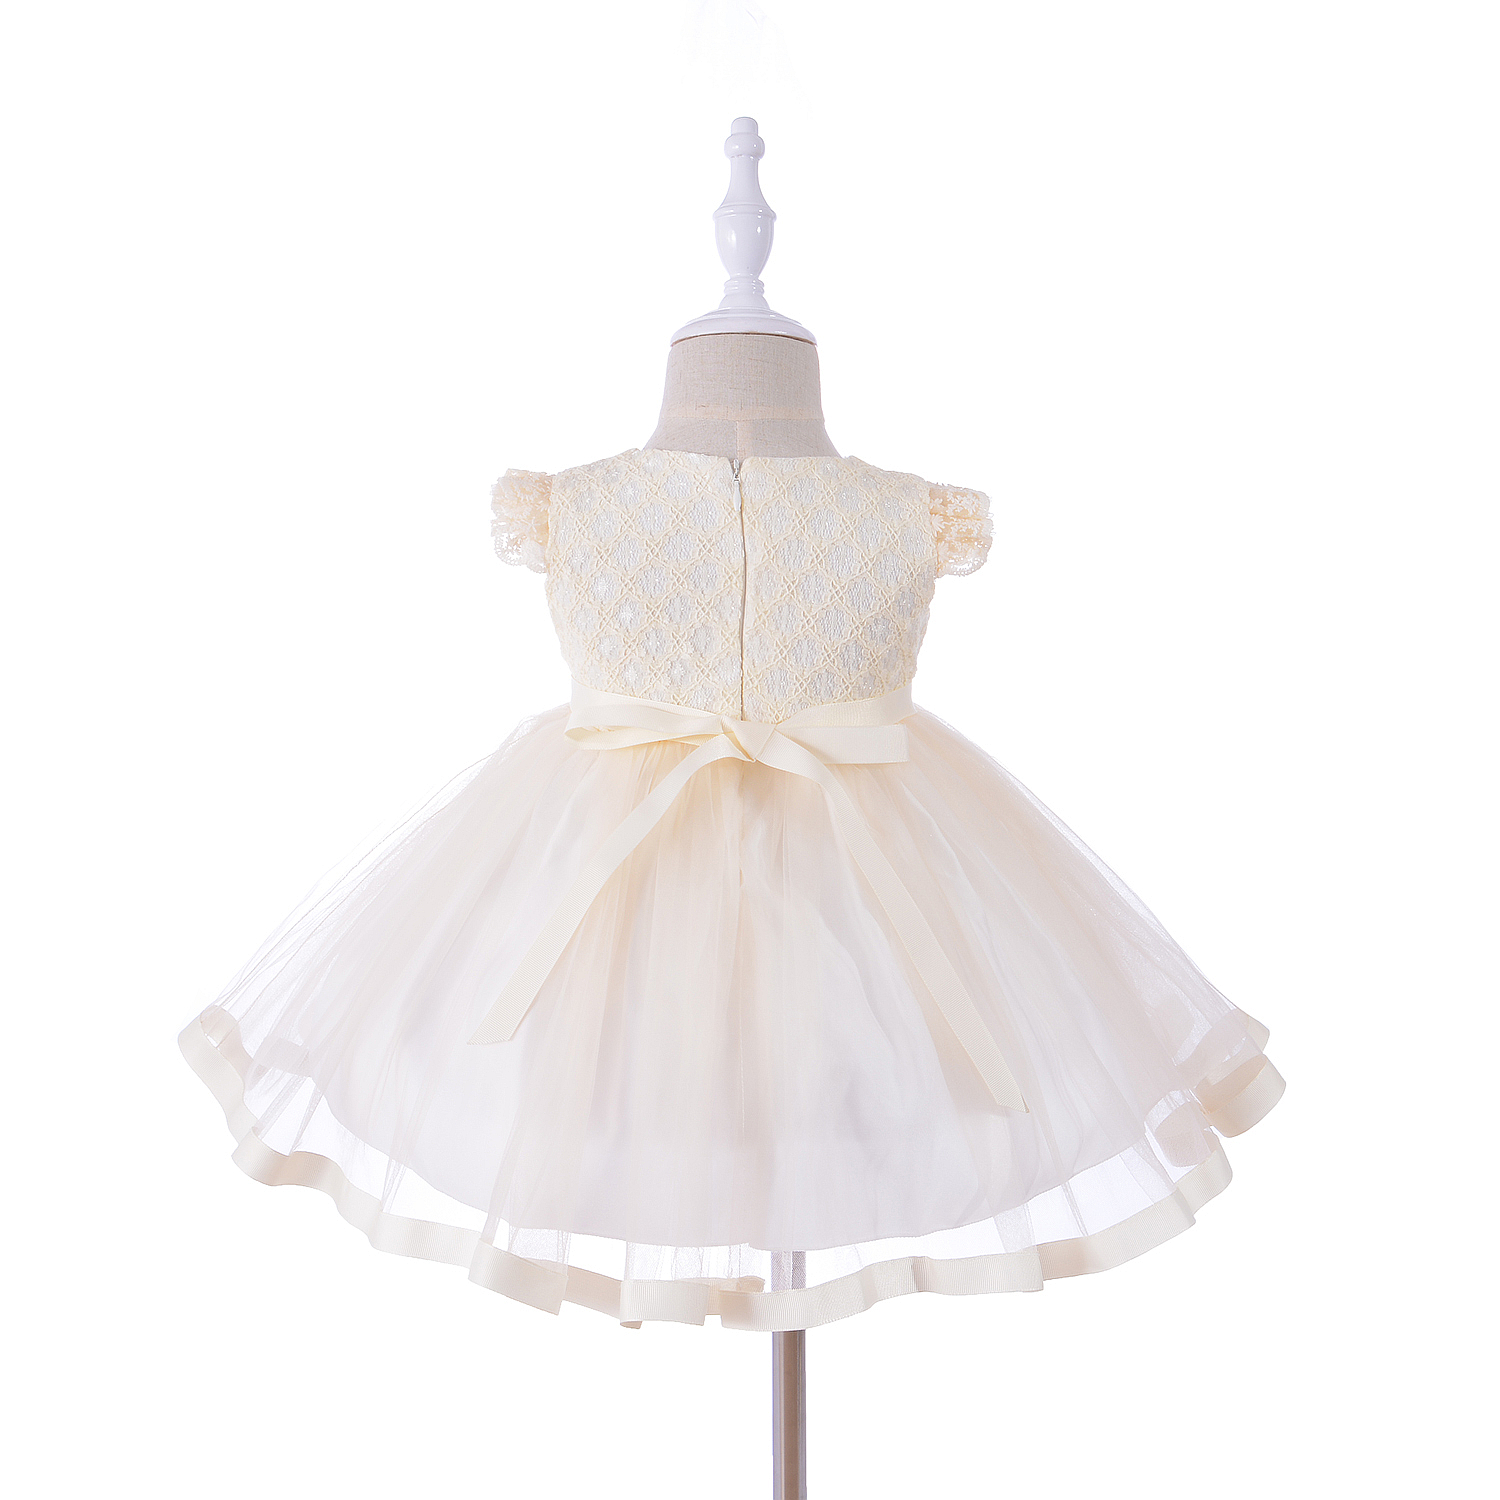 18b961e73464 Baby Girls Party Dress With Bonnet Yellow Pink Blue 0 3 6 12 18 24 ...